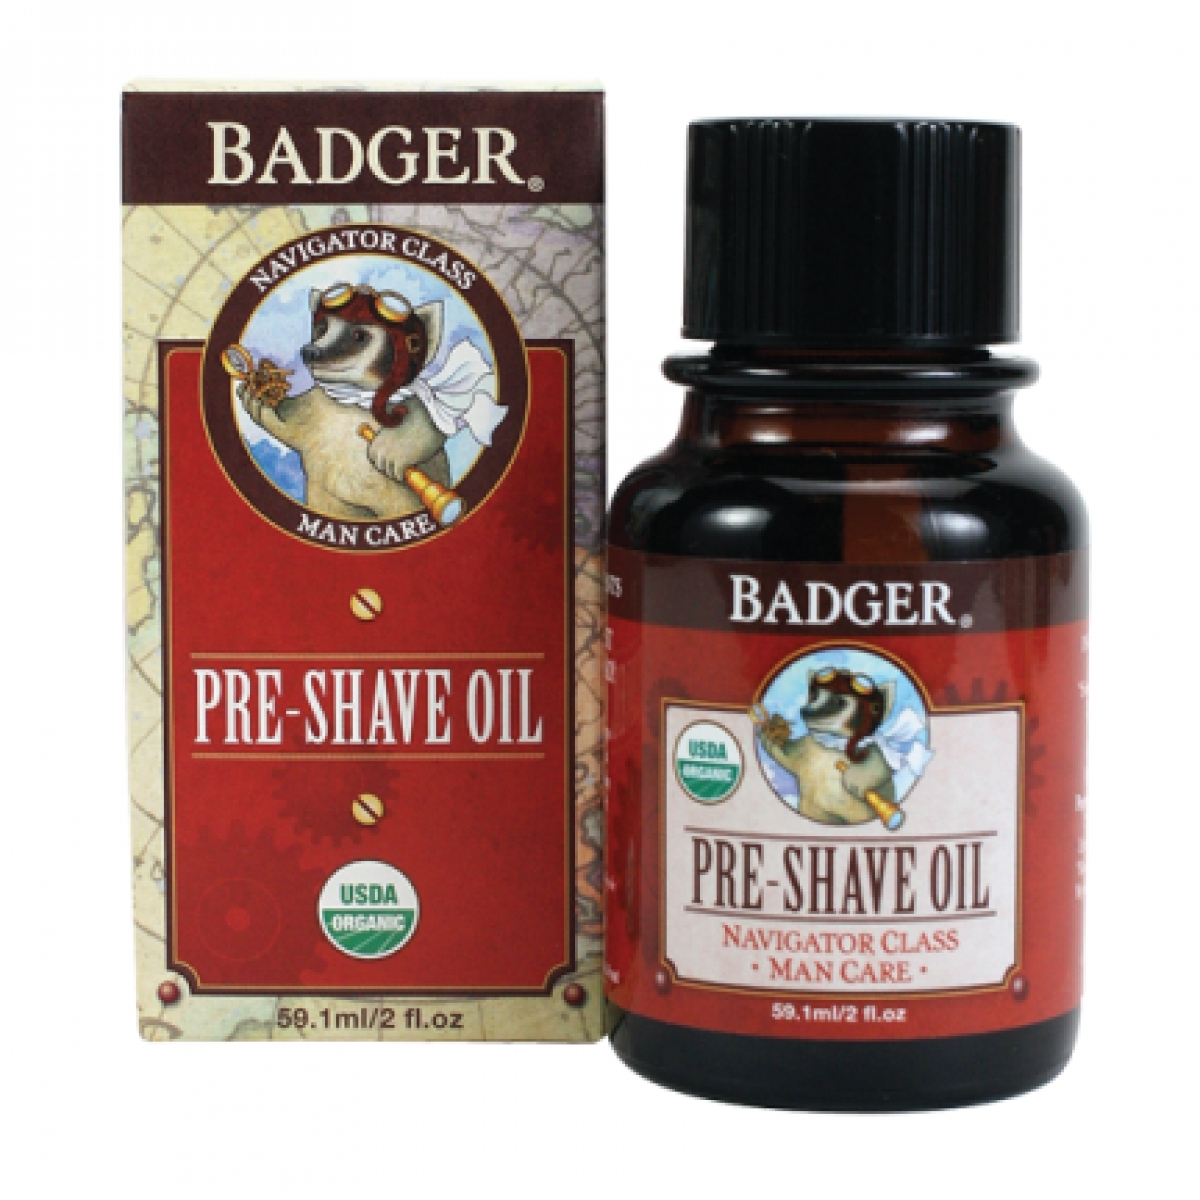 Badger Pre-Shave Oil (2oz)